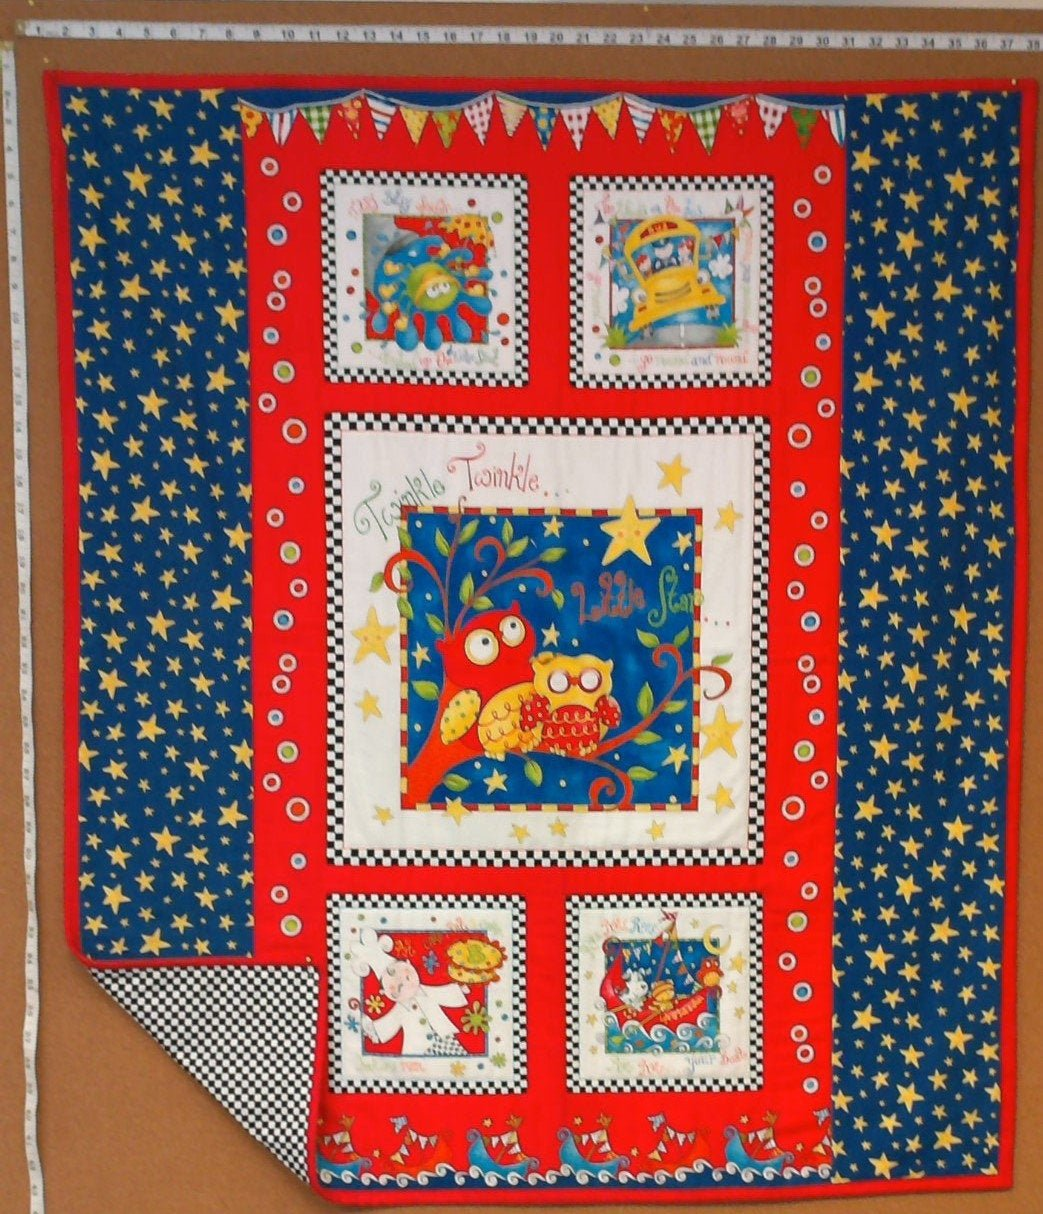 Twinkle, Twinkle Little Star Baby Quilt - Red